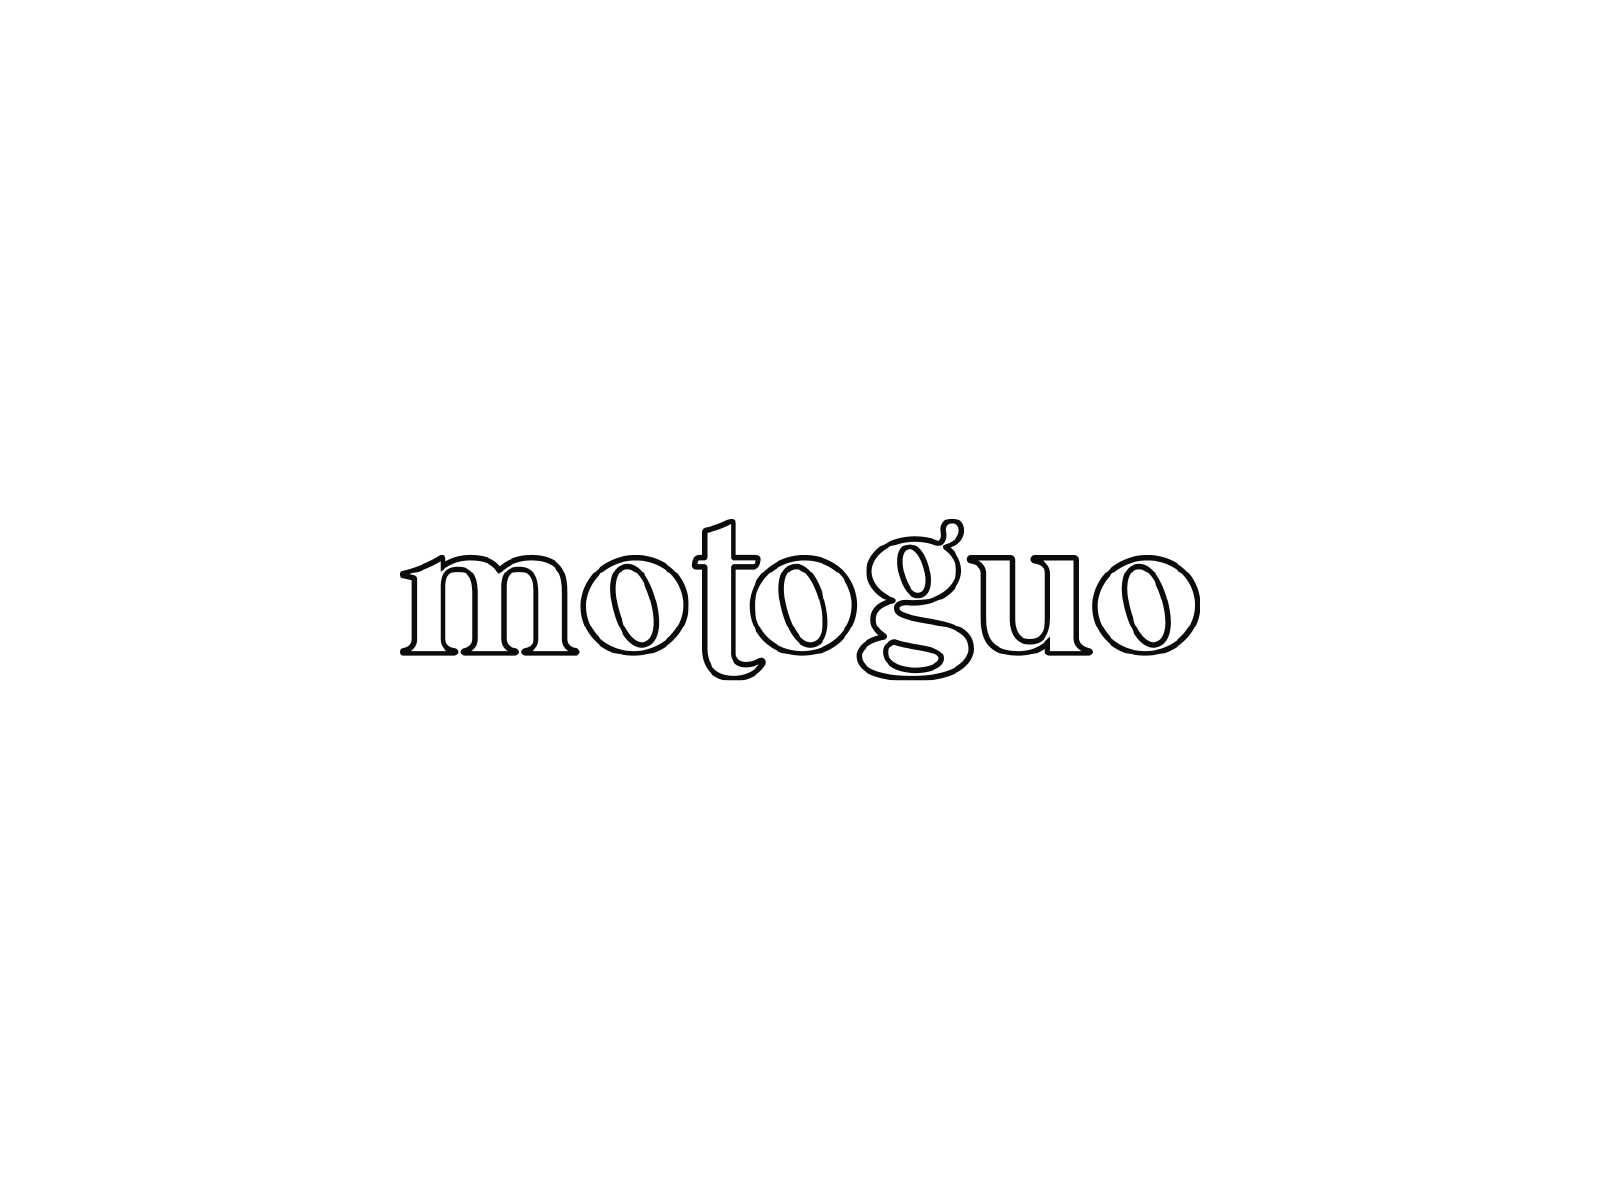 image of Motoguo